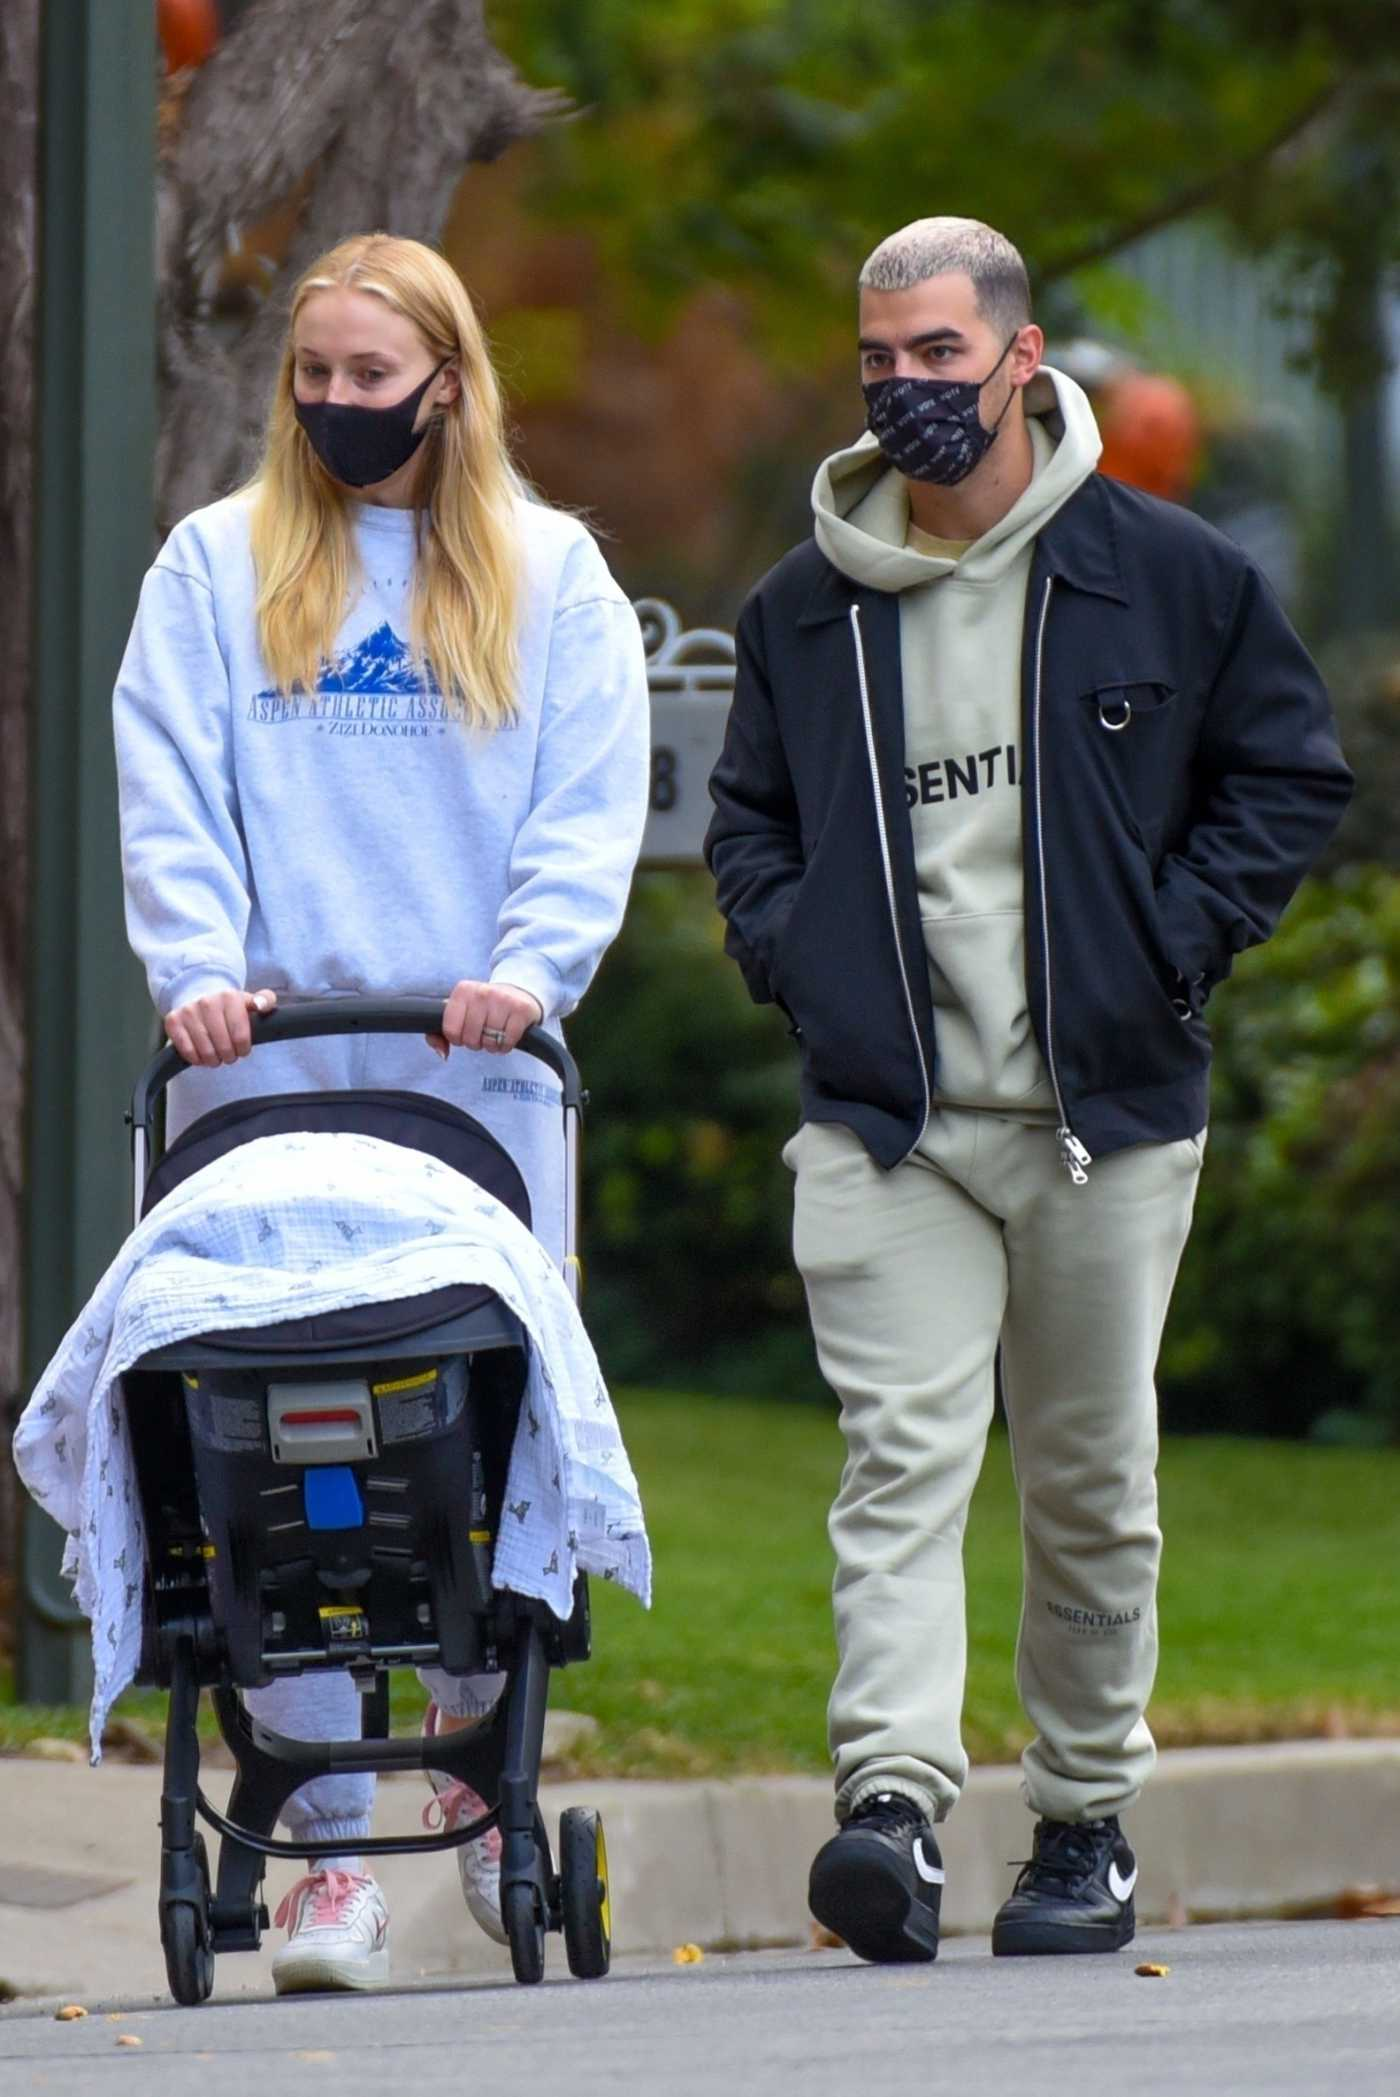 Sophie Turner in a Grey Sweatsuit Takes a Walk with Her New Baby Willa Out with Joe Jonas in Los Angeles 10/25/2020